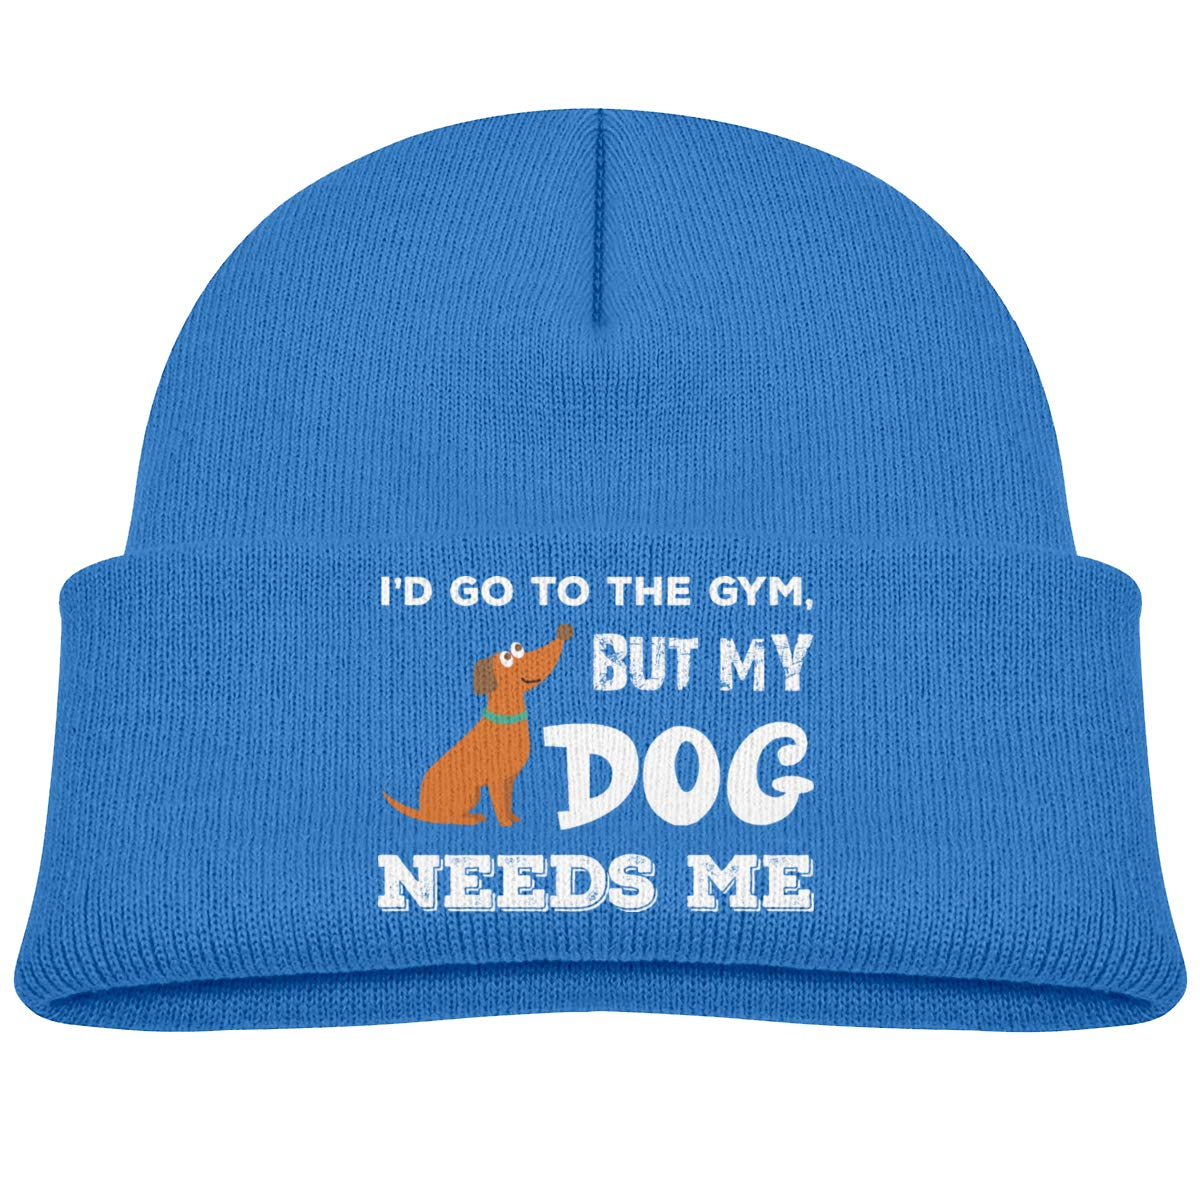 Id Go to The Gym But My Dog Needs Me Knit Hats Baby Girls Blue